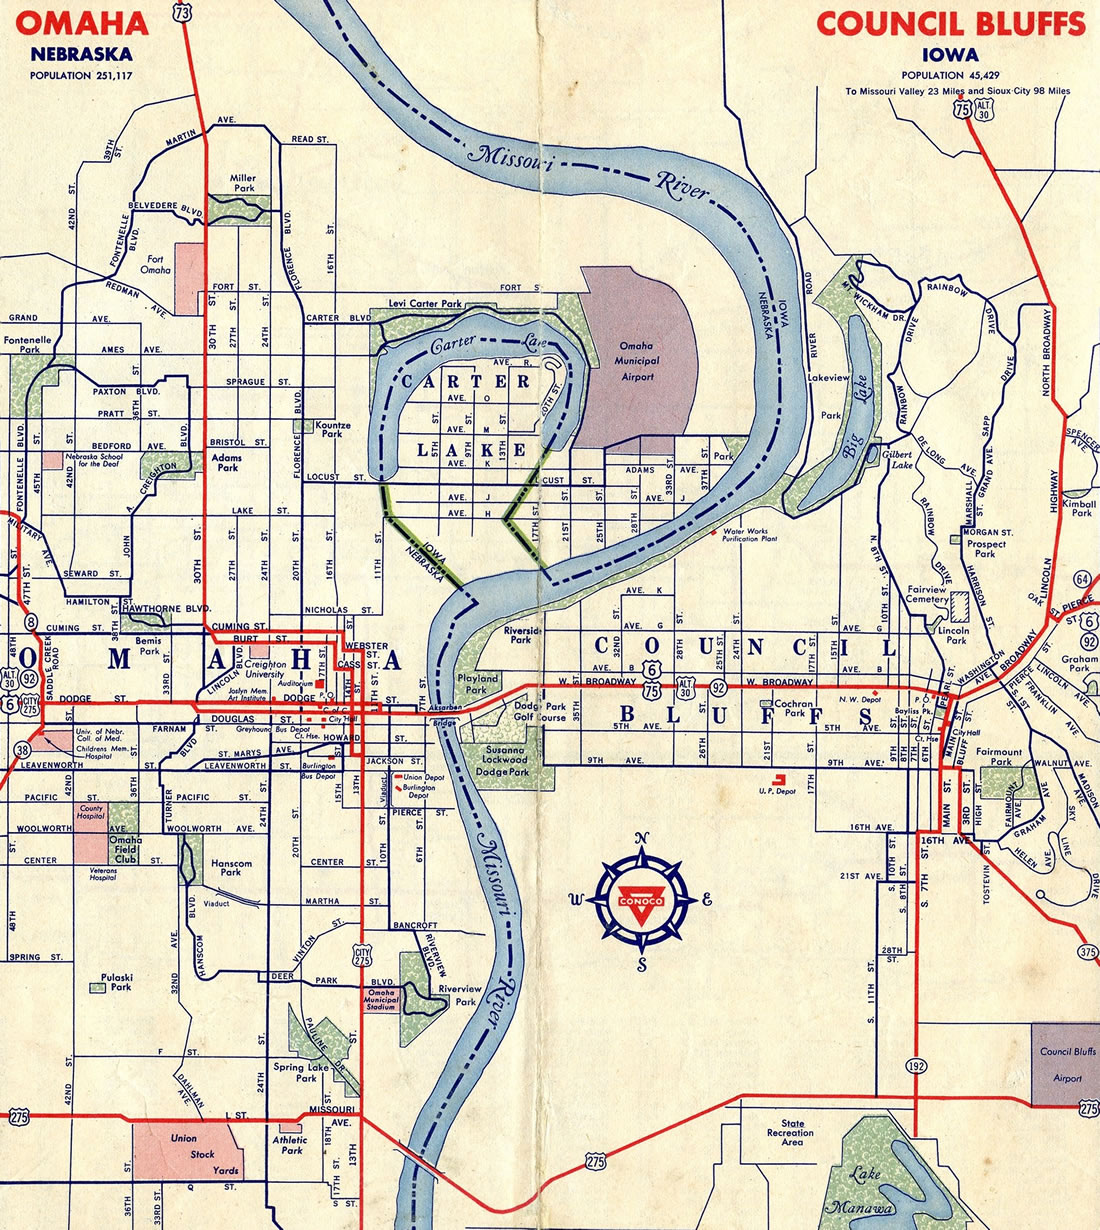 Omaha, Nebraska and Council Bluffs, Iowa in 1956.